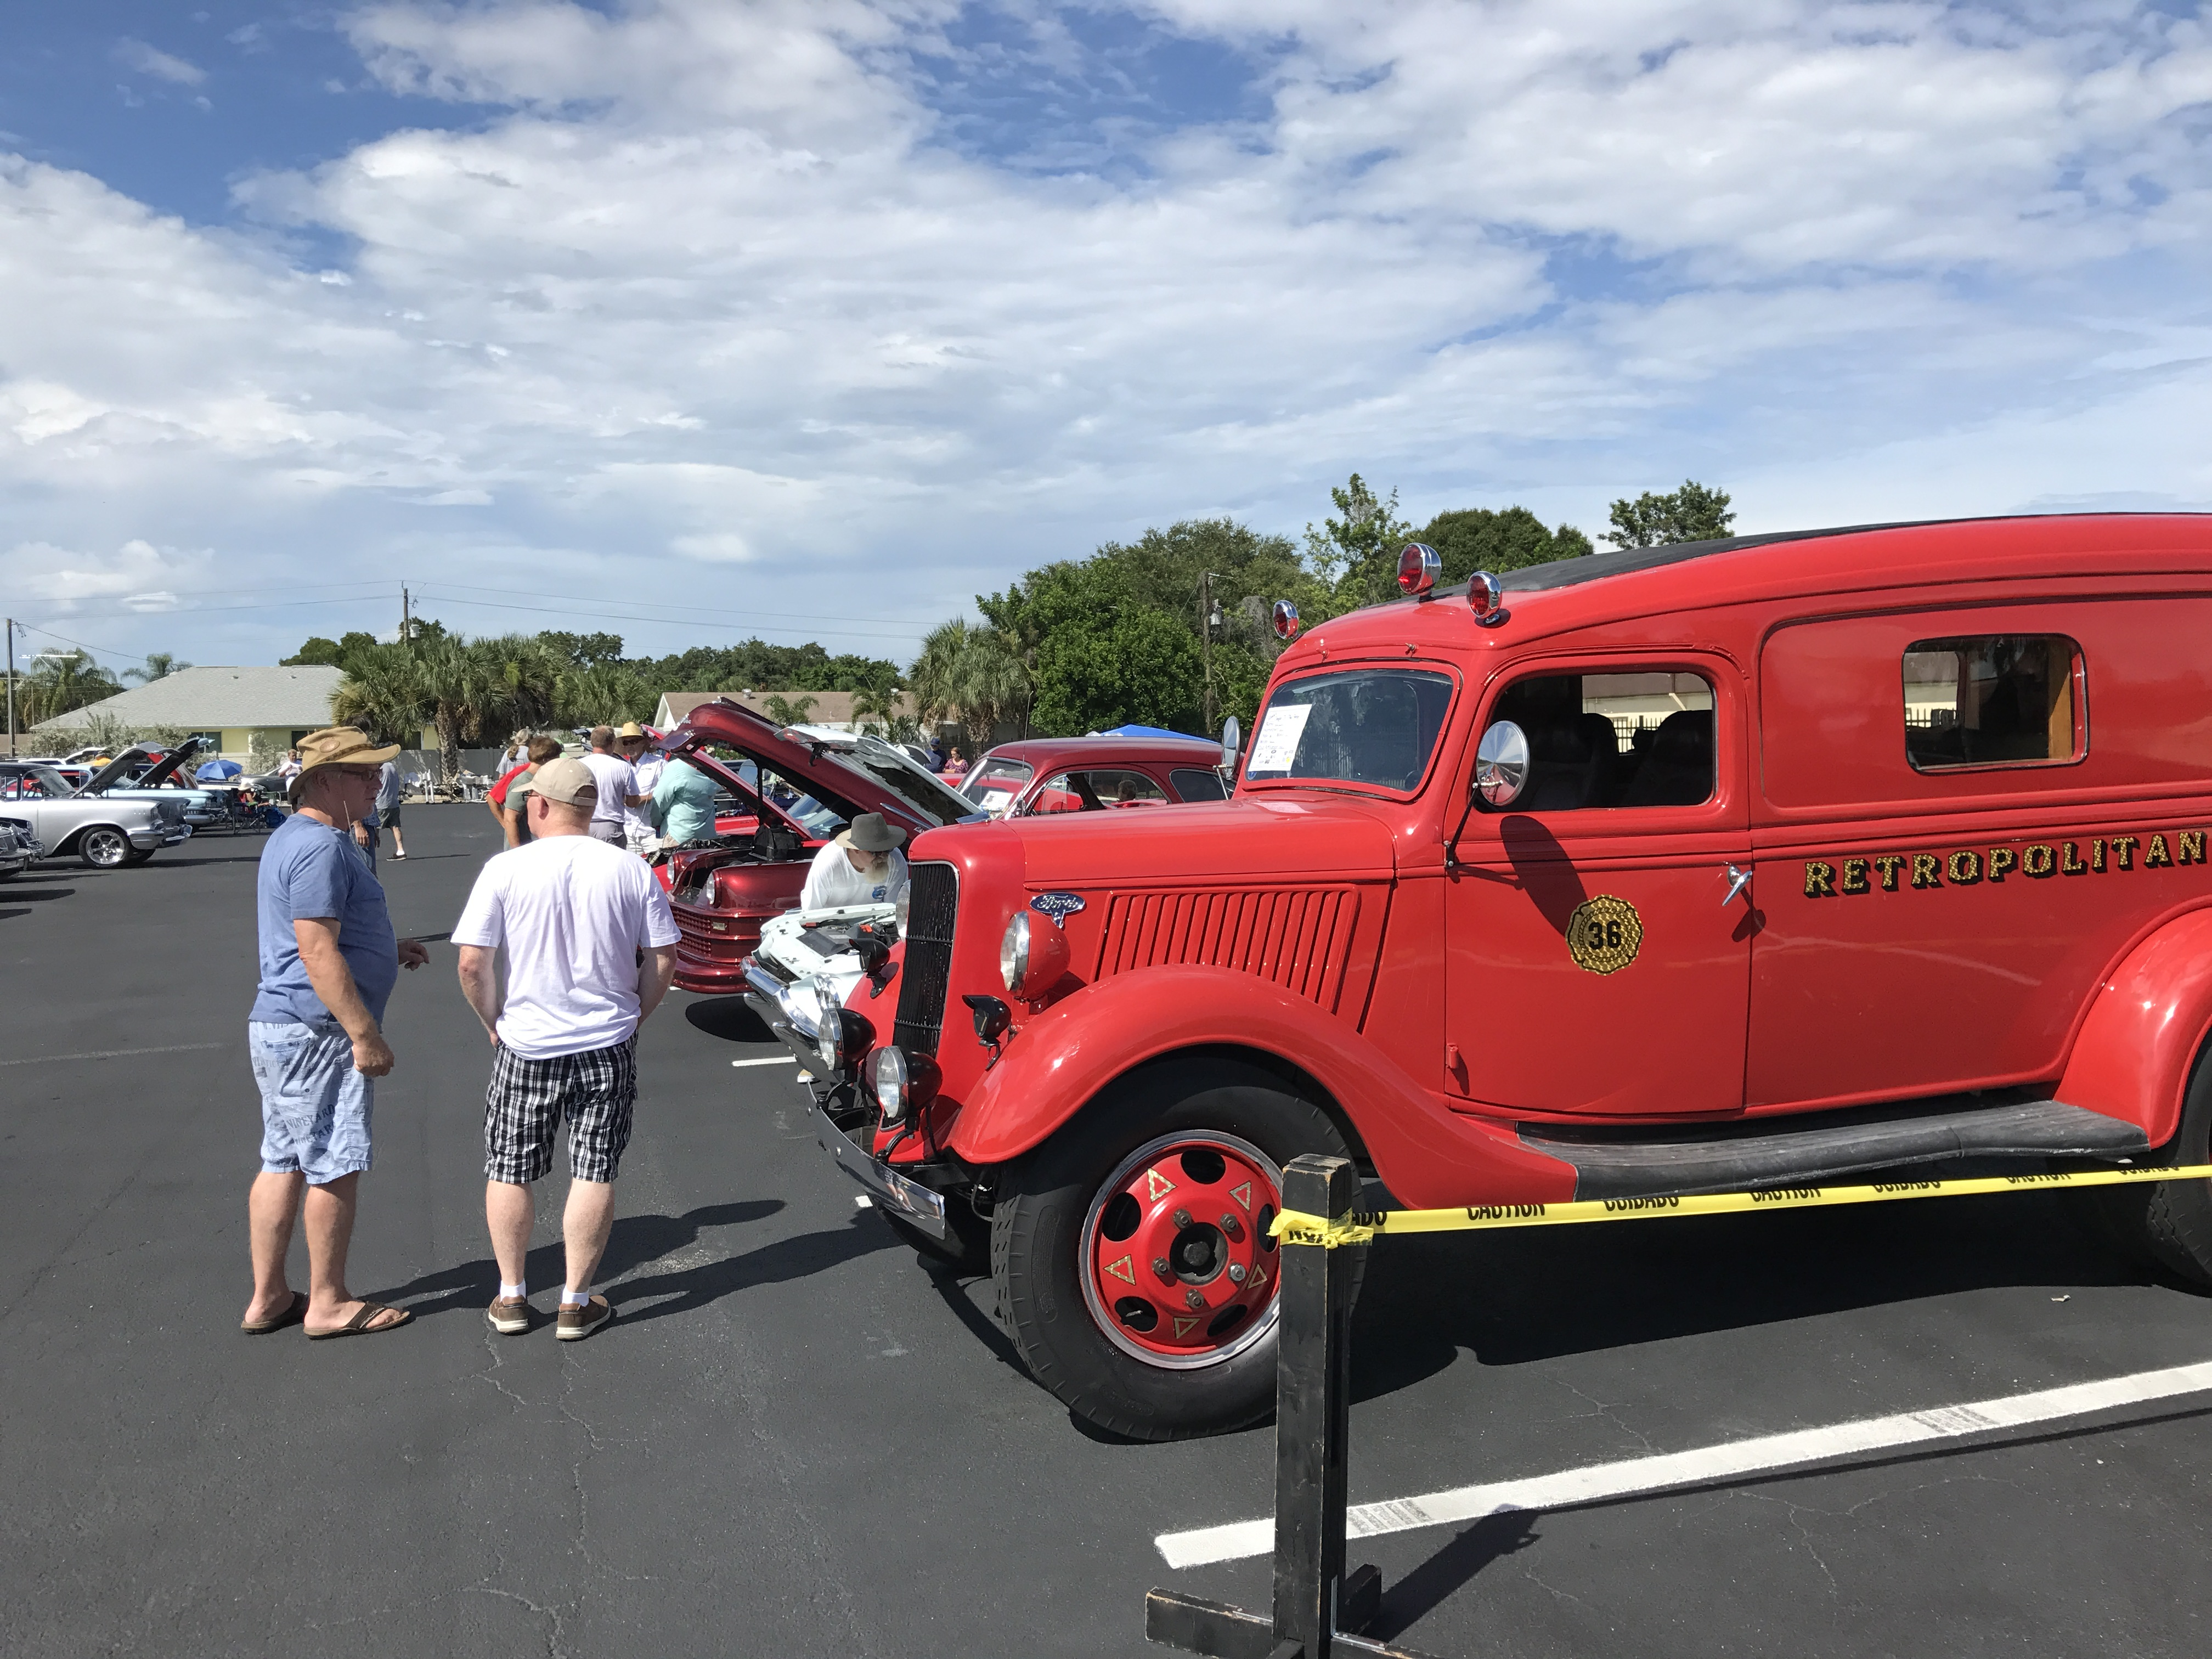 1936 Ford Rescue Truck - This Old Fire Truck